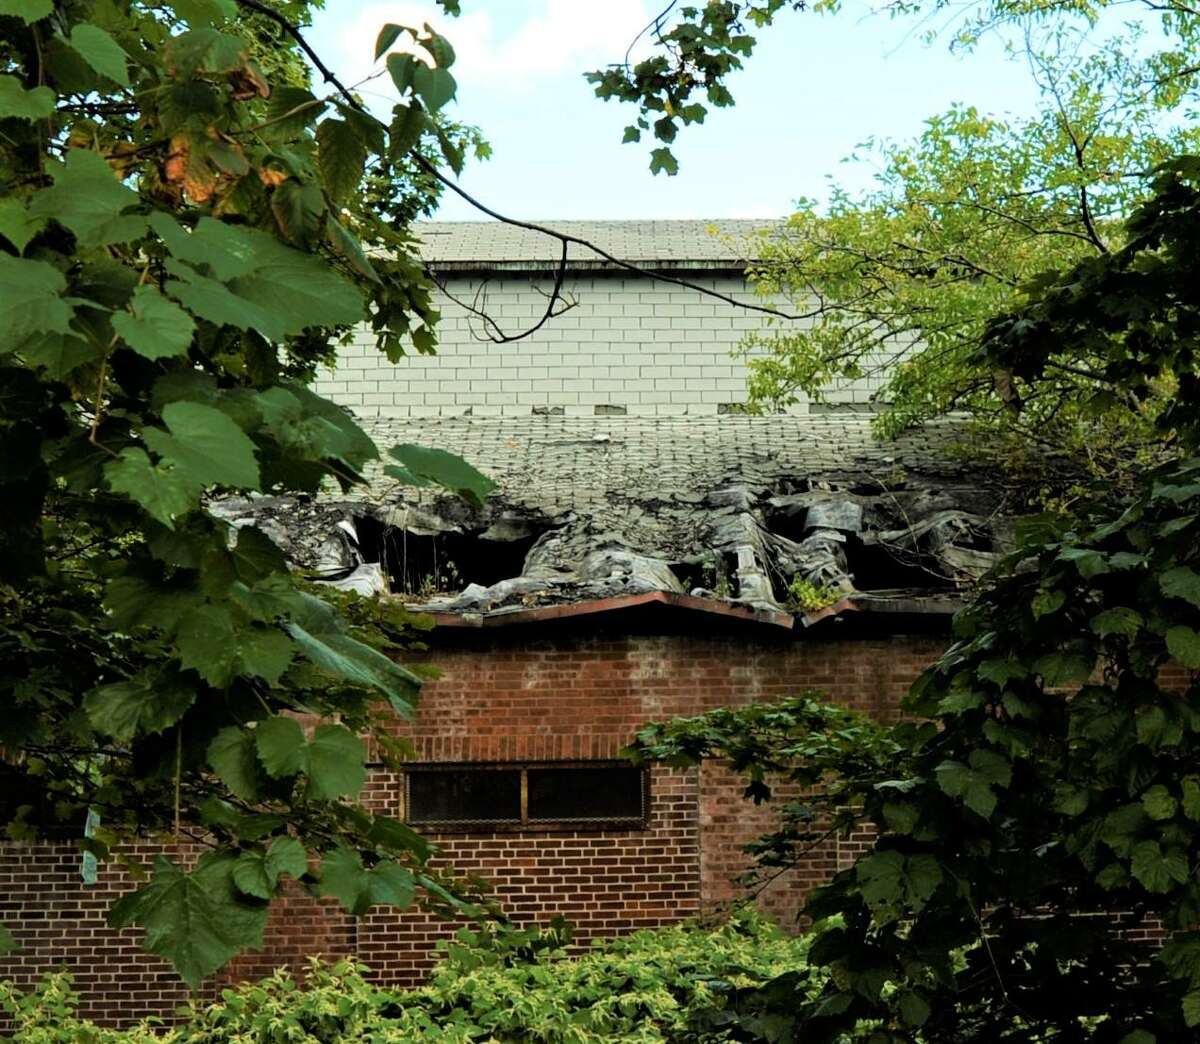 The deteriorated roof at 33 E. Franklin St. - the 2.5-acre site of the condemned industrial building being acquired by Danbury.